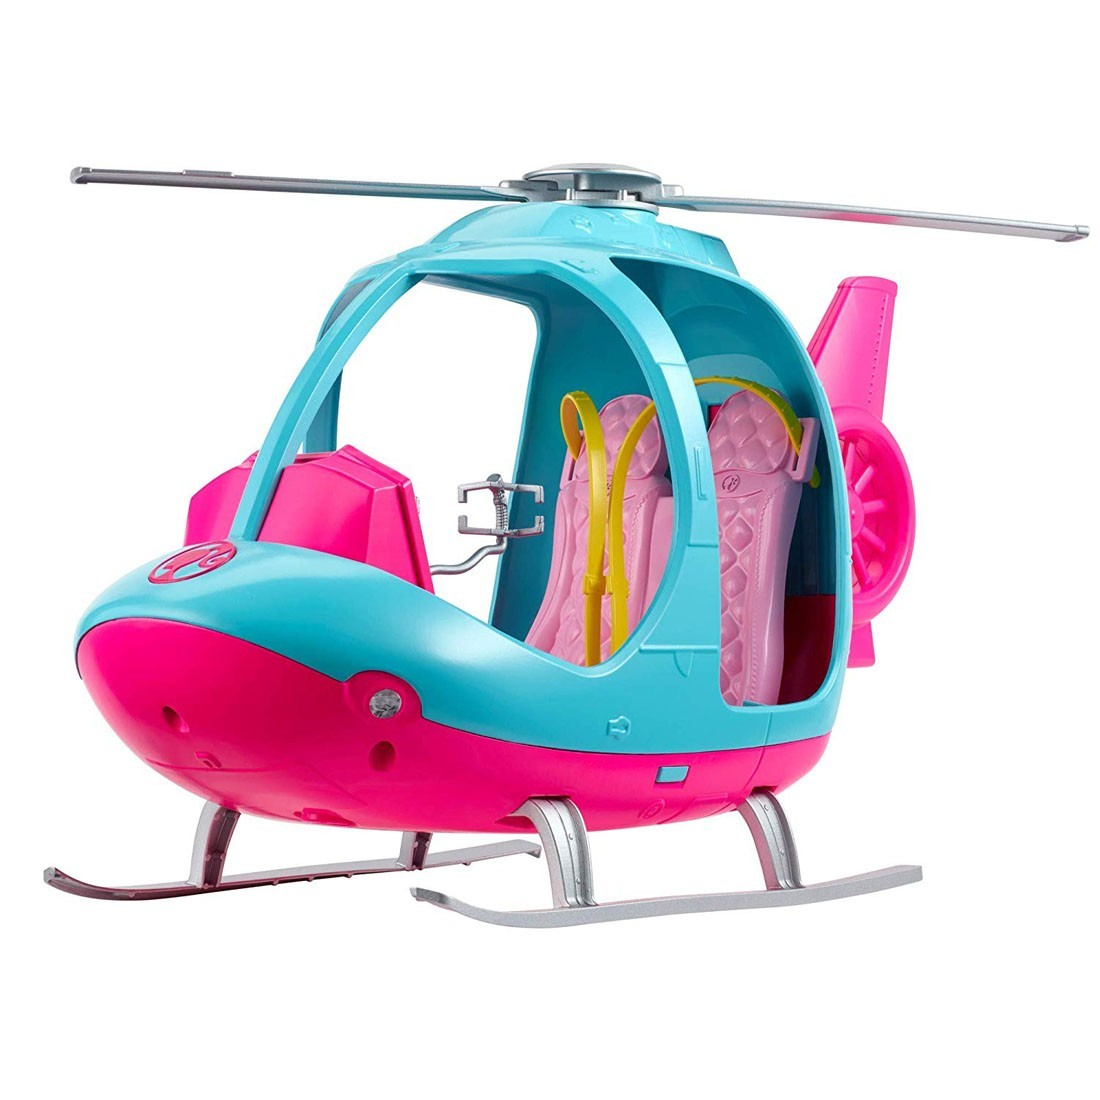 barbie-dreamhouse-adventures-helicopter (1)